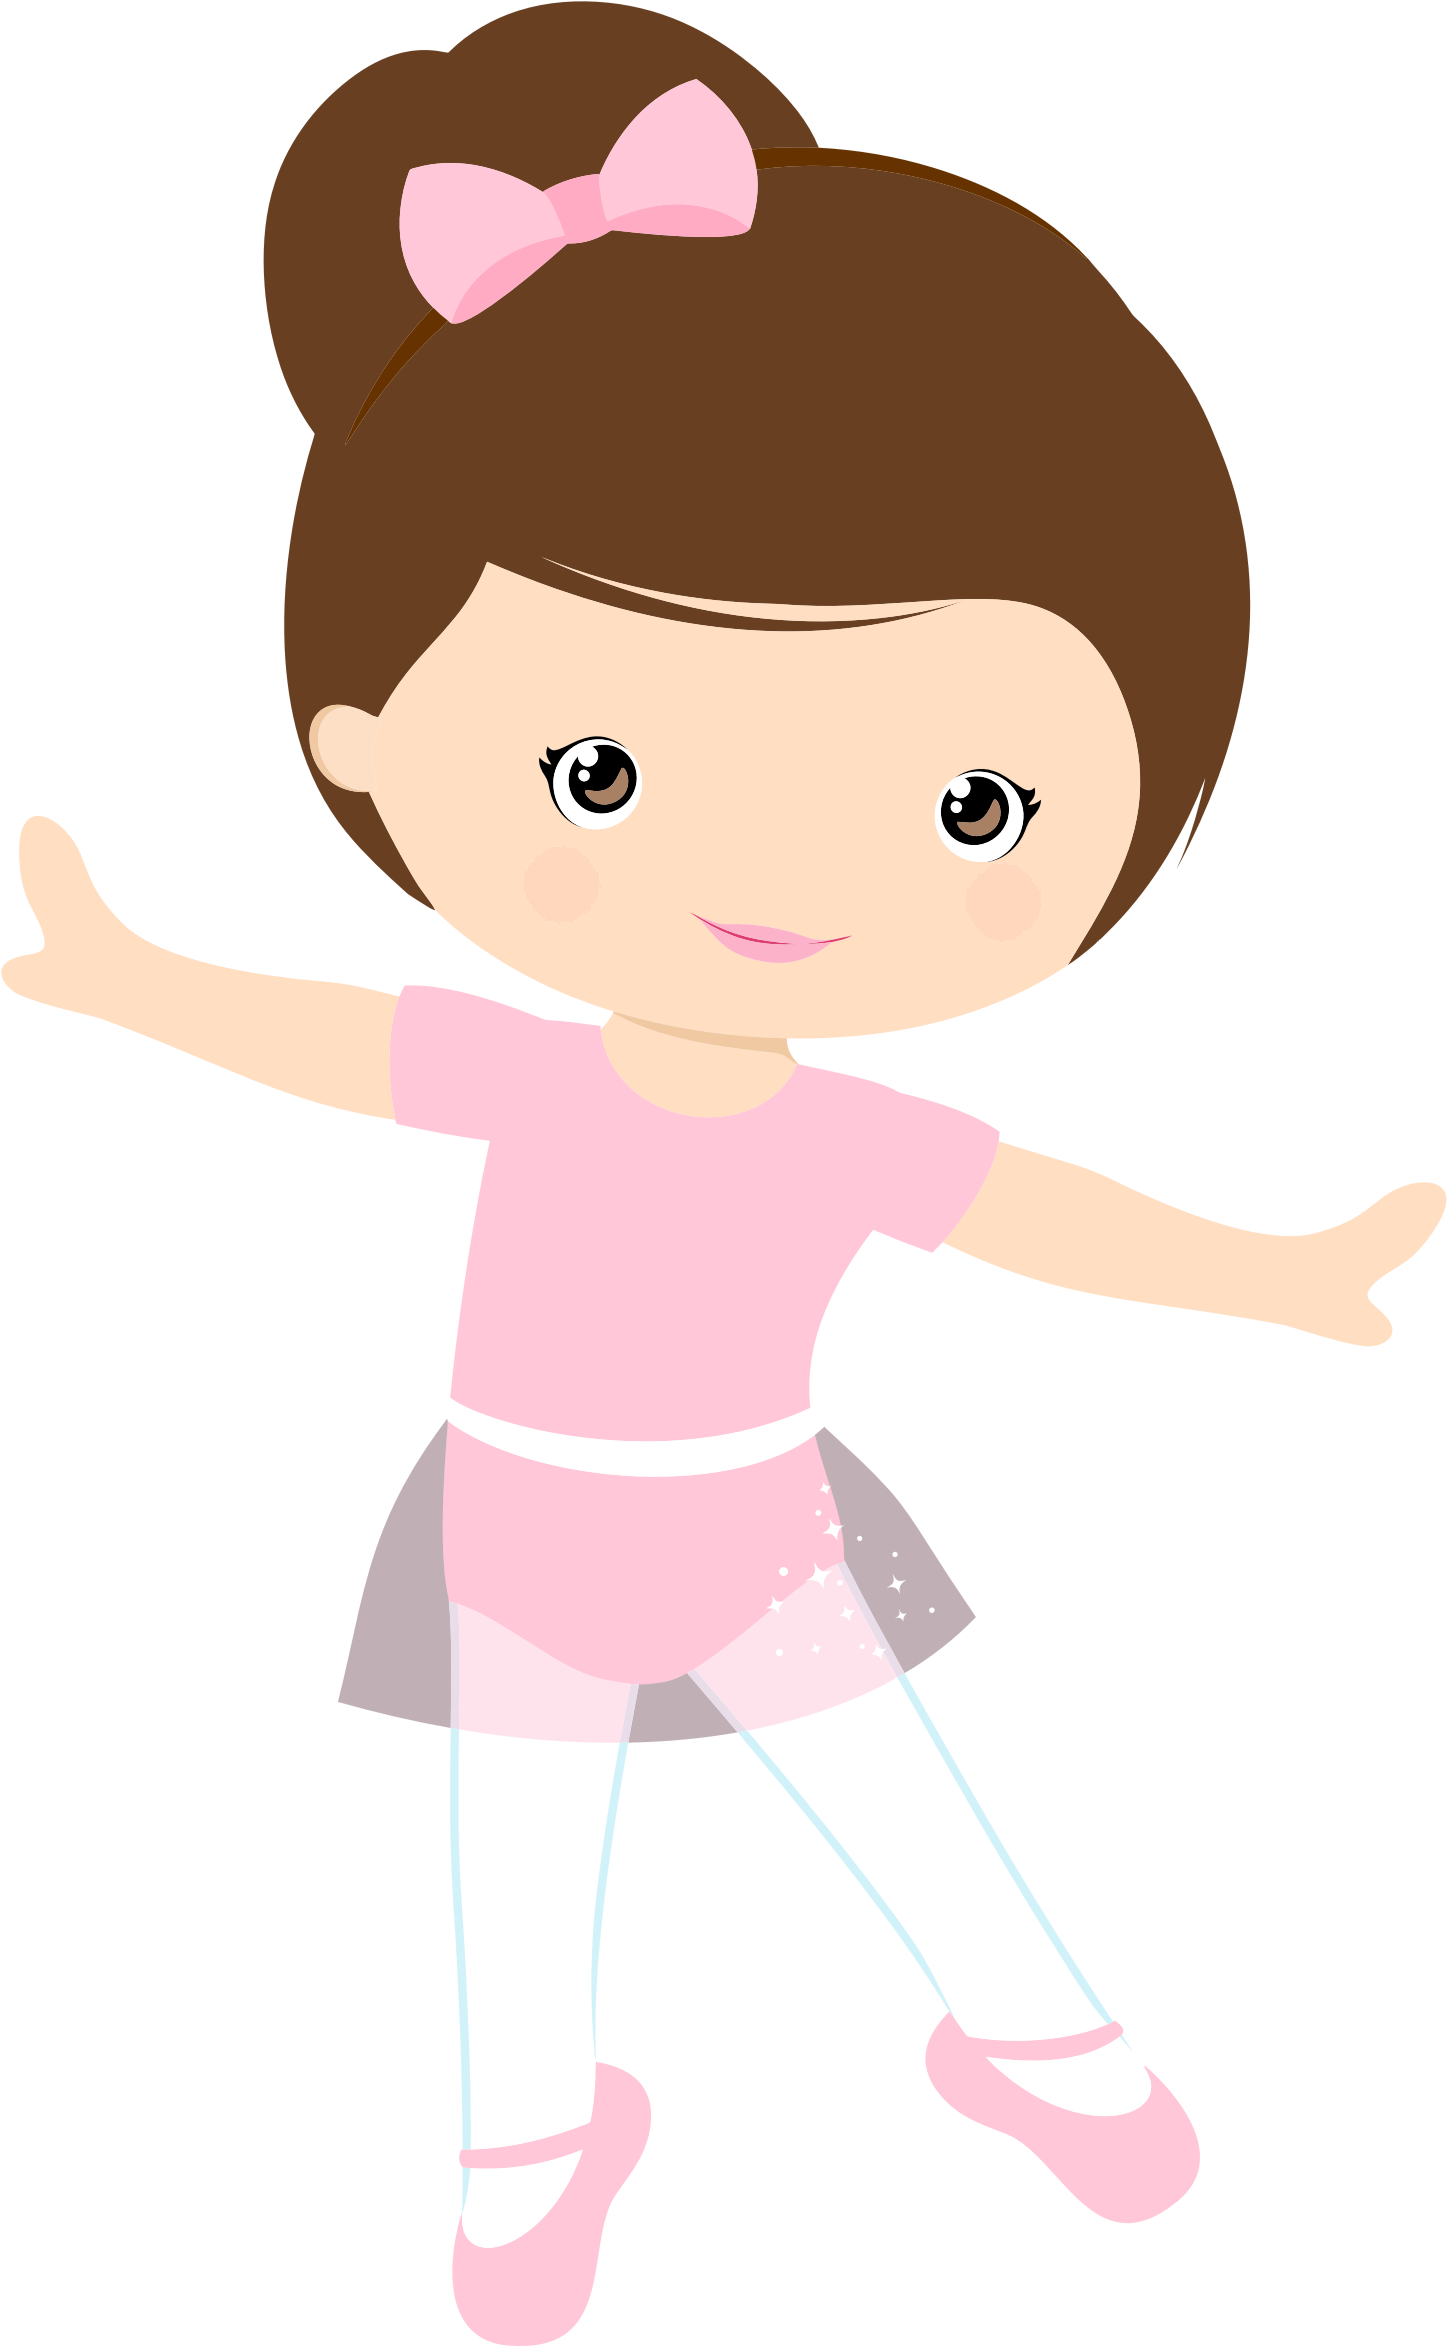 Little girl ballerina by. Skin clipart illustration